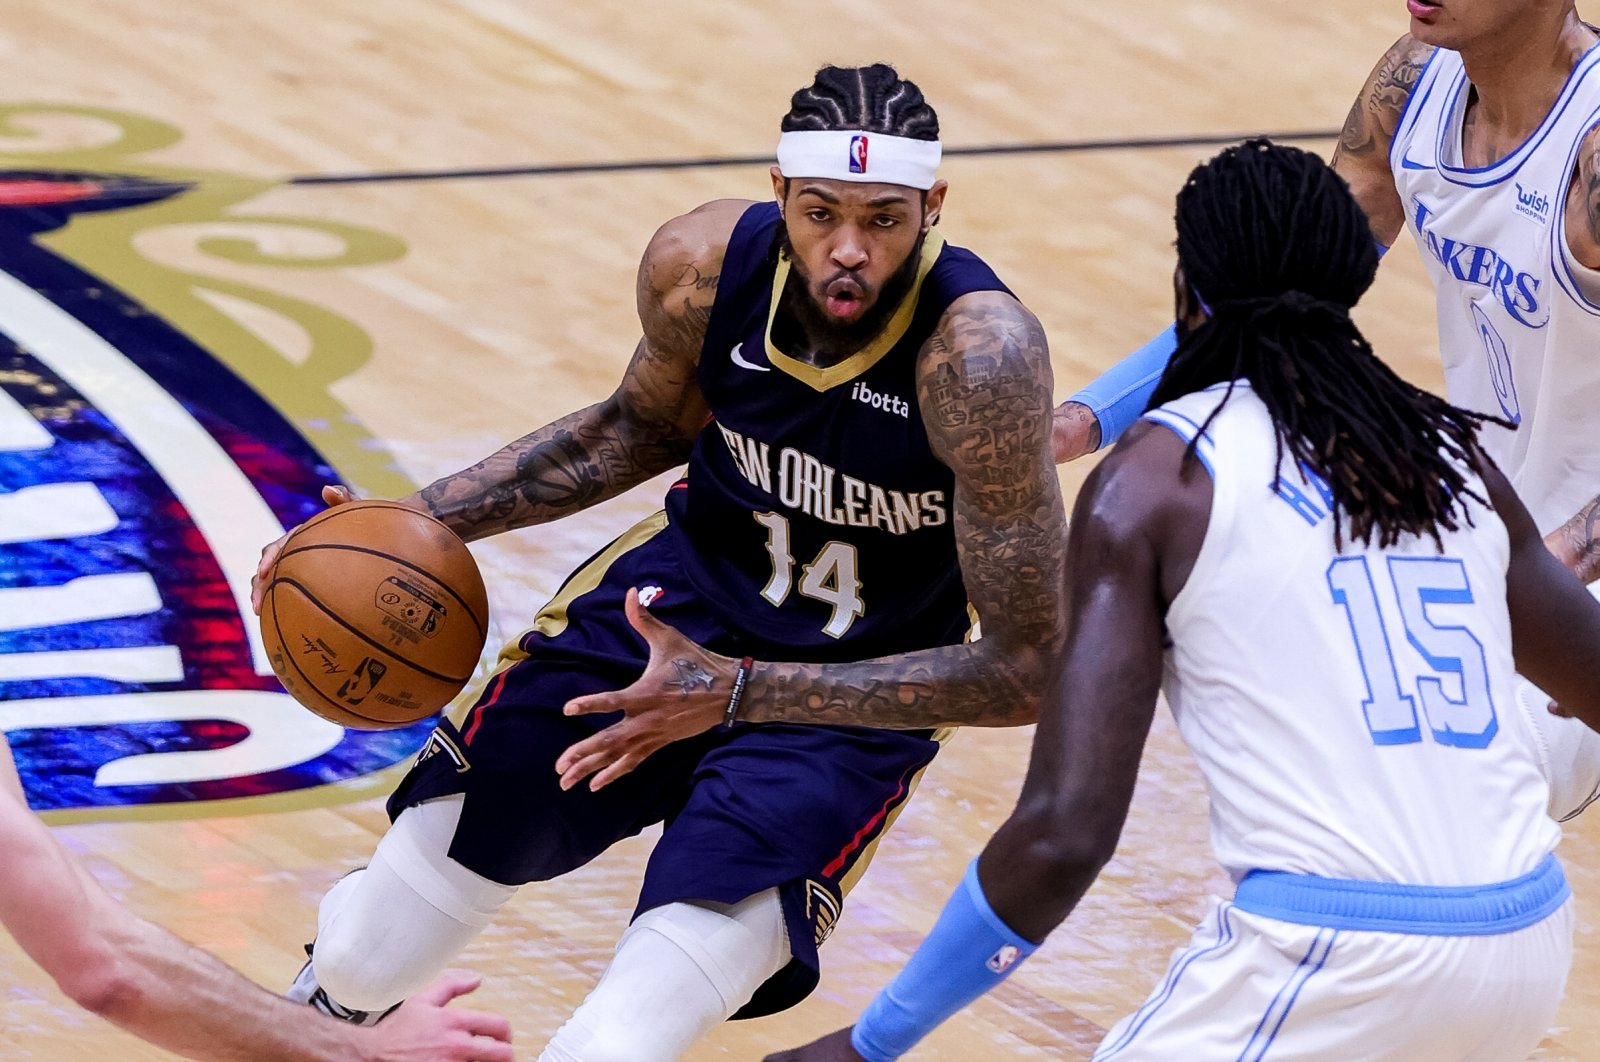 New Orleans Pelicans forward Brandon Ingram (L) dribbles against Los Angeles Lakers center Montrezl Harrell (R) during an NBA game at Smoothie King Center, New Orleans, Louisiana, U.S.,  March 23, 2021.